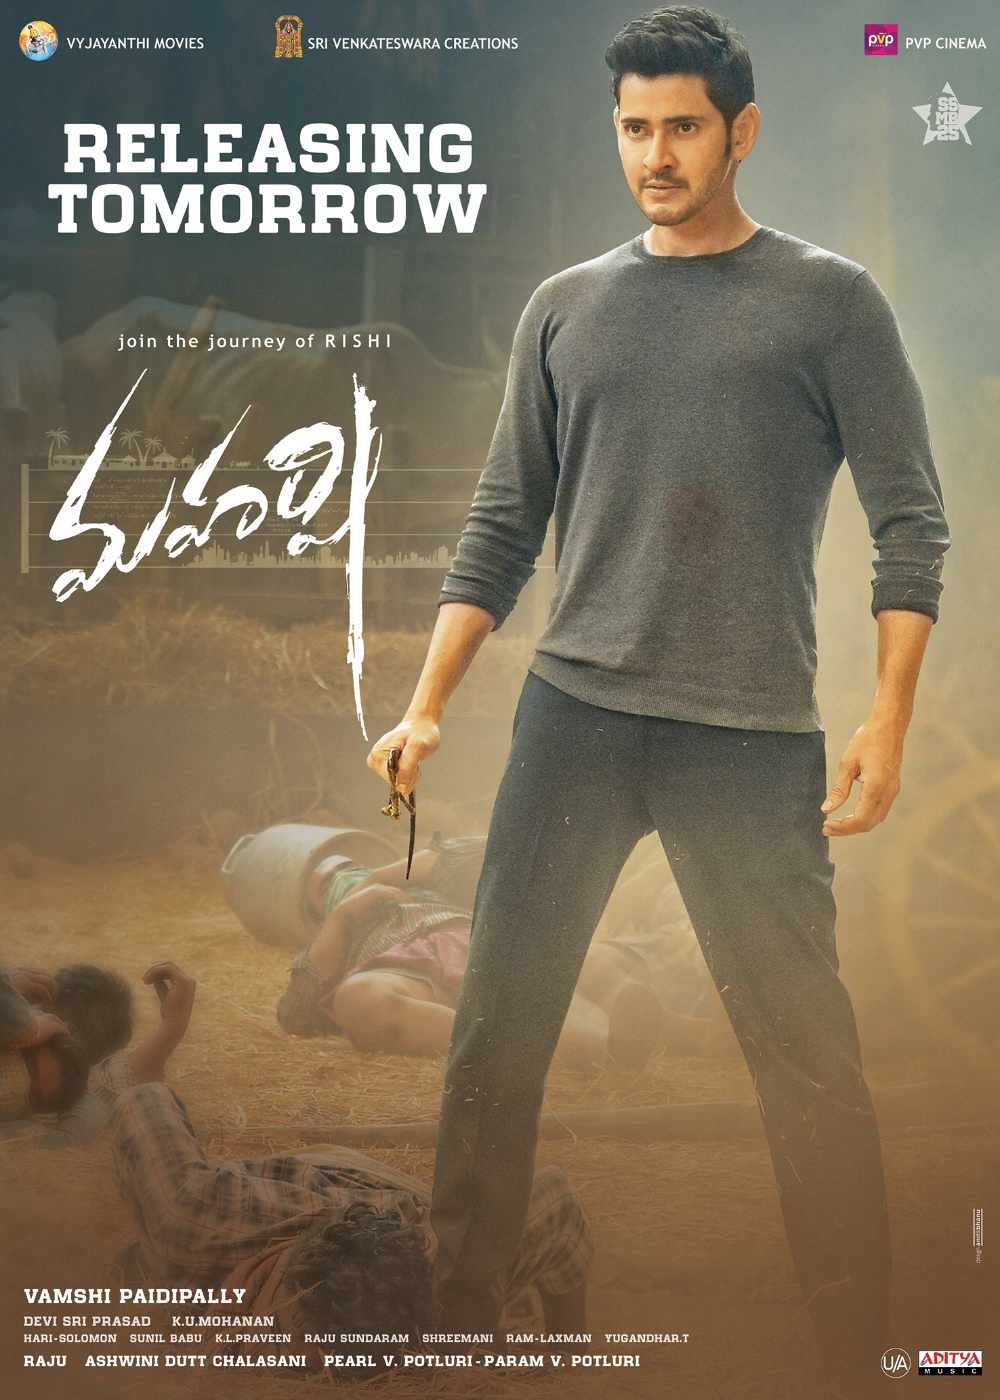 Maharshi 2019 Telugu Movie 720p Hdrip Telugu Movies Mahesh Babu Wallpapers Cinema Releases